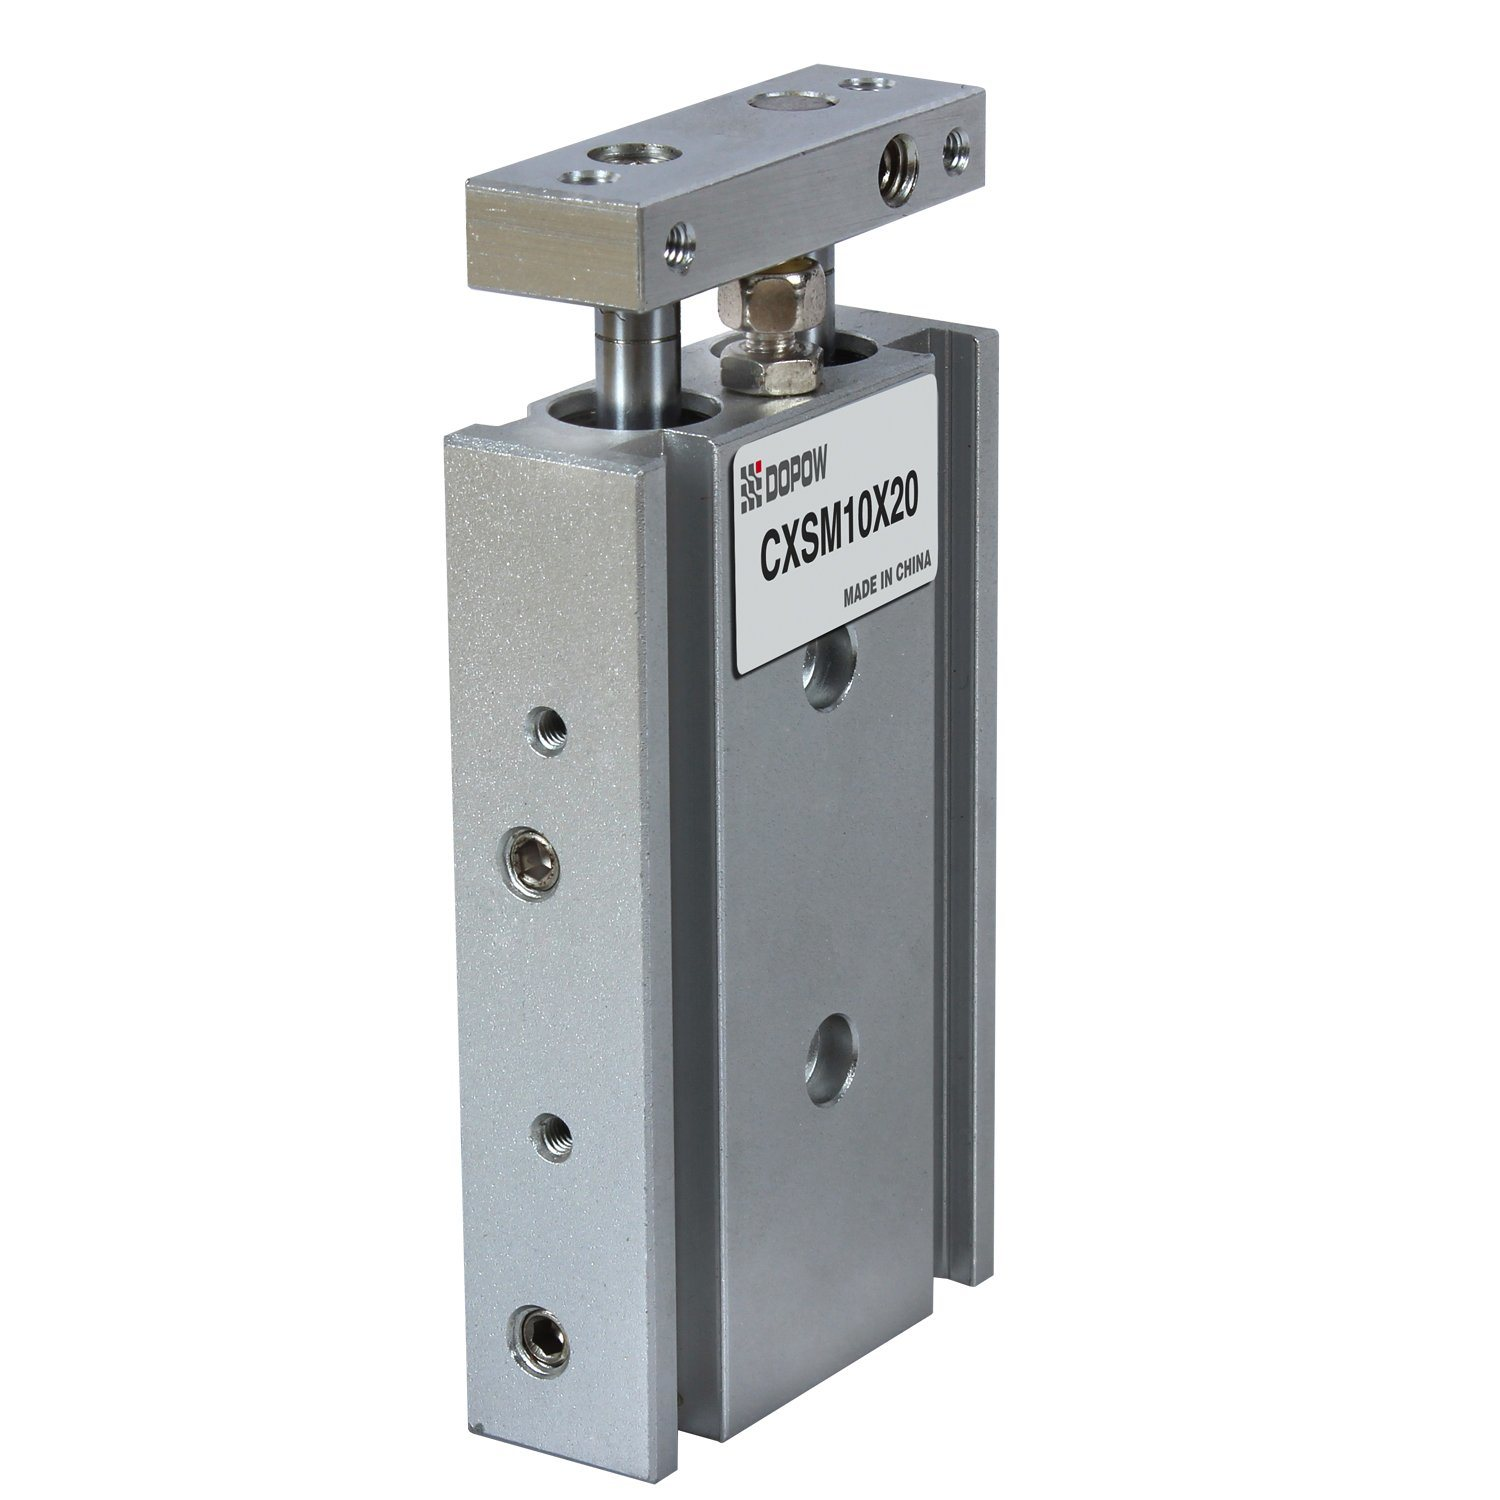 Cxsm 10-20 Double Cylinder Pneumatic Slide Cylinder Compact Air Cylinder